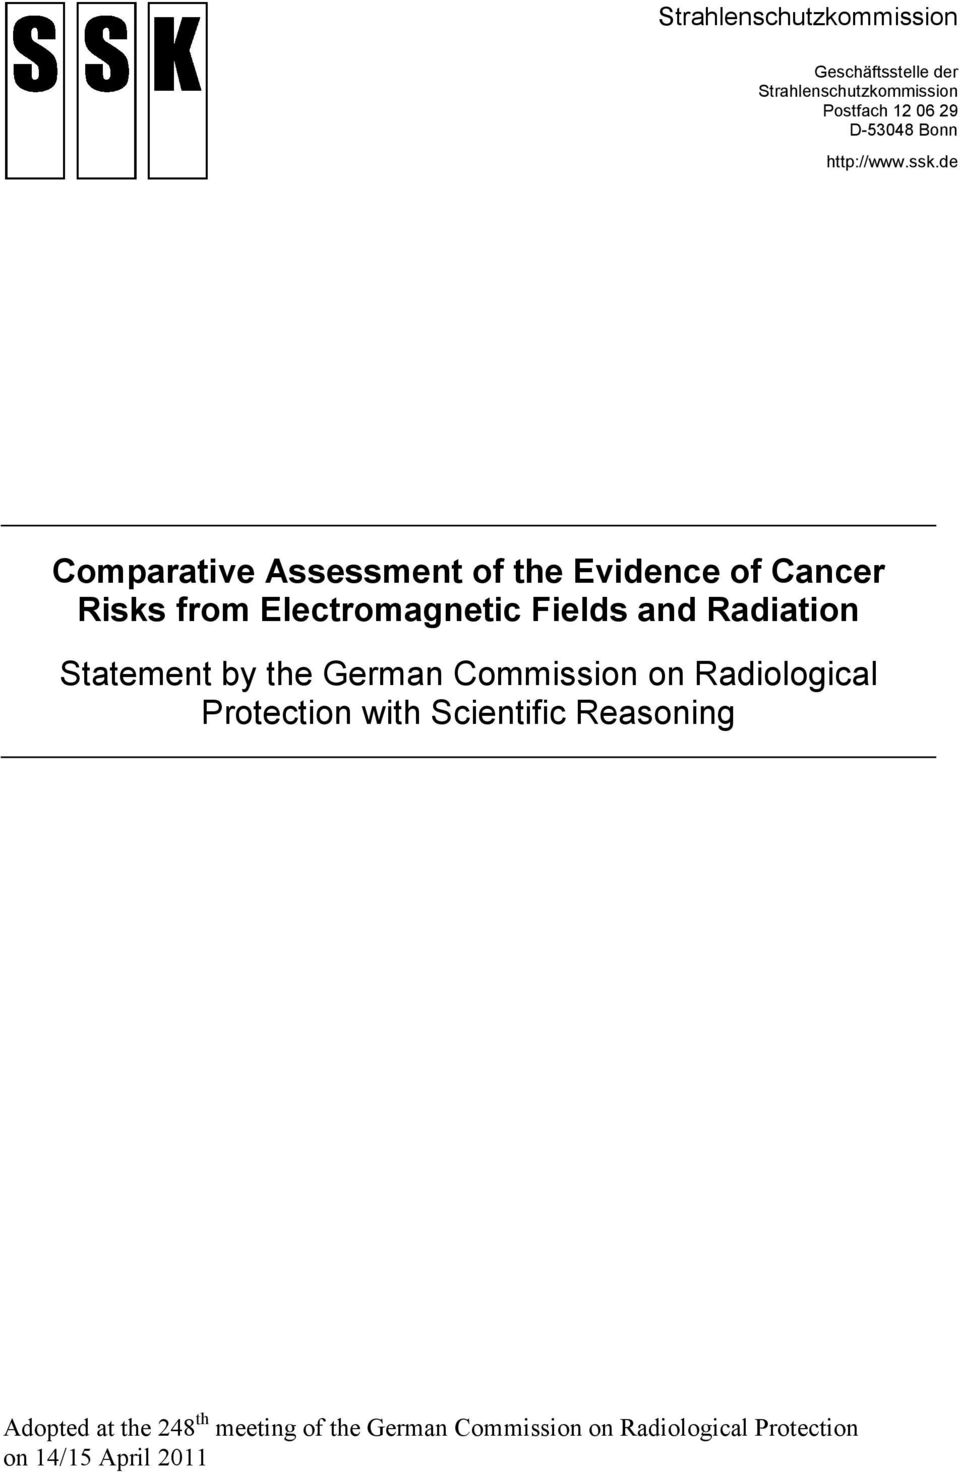 de Comparative Assessment of the Evidence of Cancer Risks from Electromagnetic Fields and Radiation